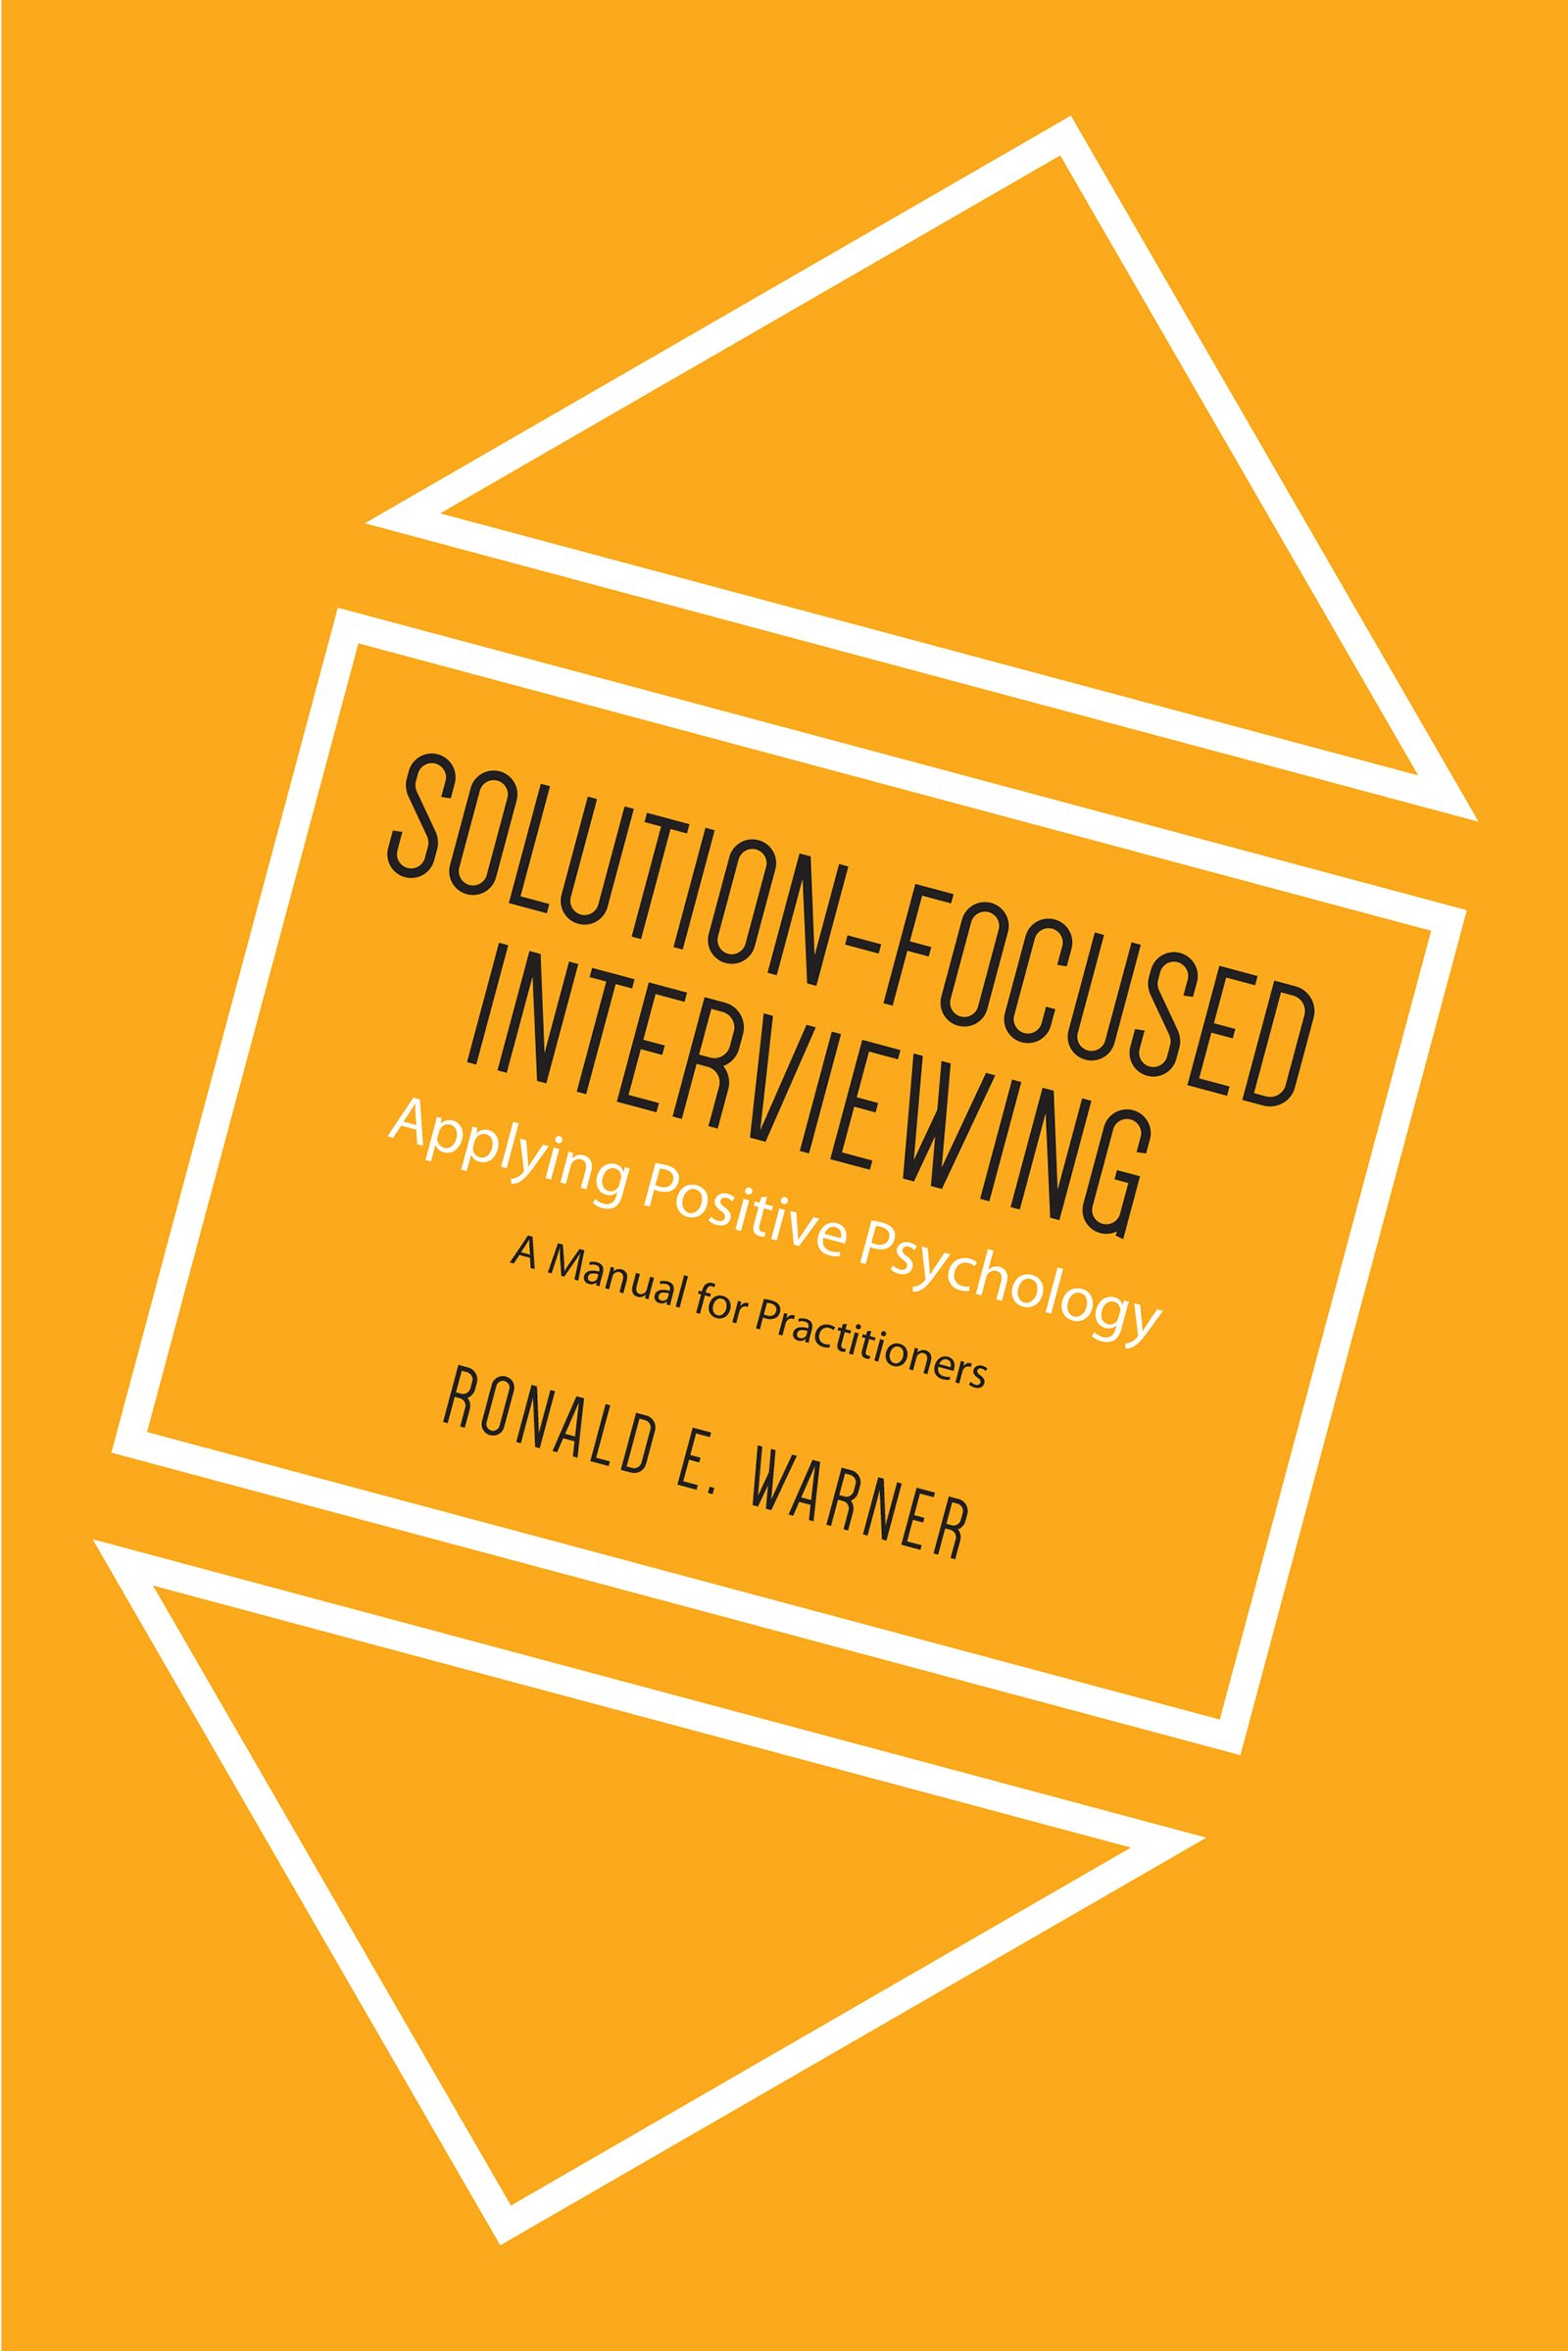 Solution-Focused Interviewing: Applying Positive Psychology, A Manual for  Practitioners: Ronald E. Warner: 9781442615496: Books - Amazon.ca